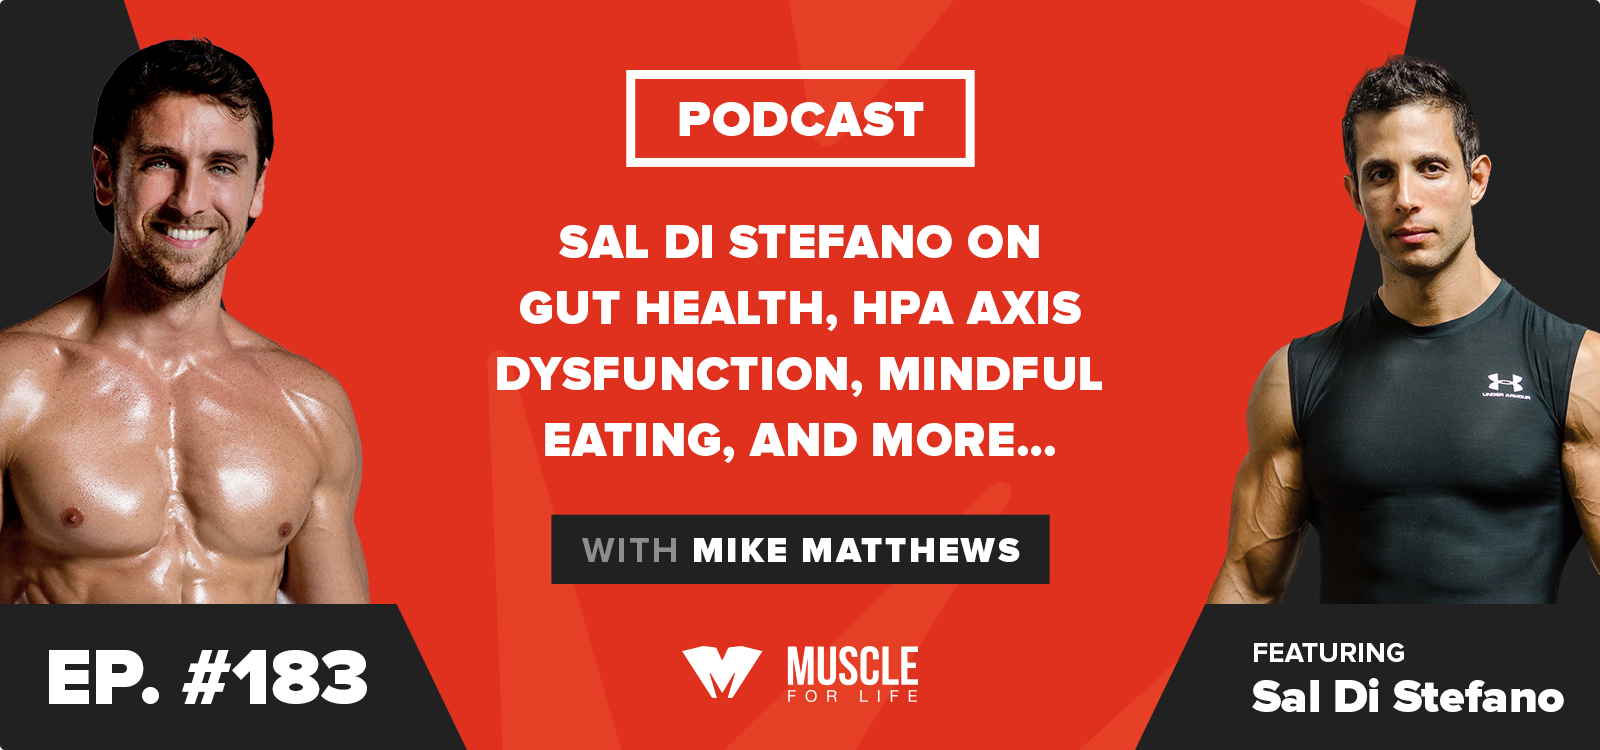 Sal Di Stefano on Gut Health, HPA Axis Dysfunction, Mindful Eating, and More…